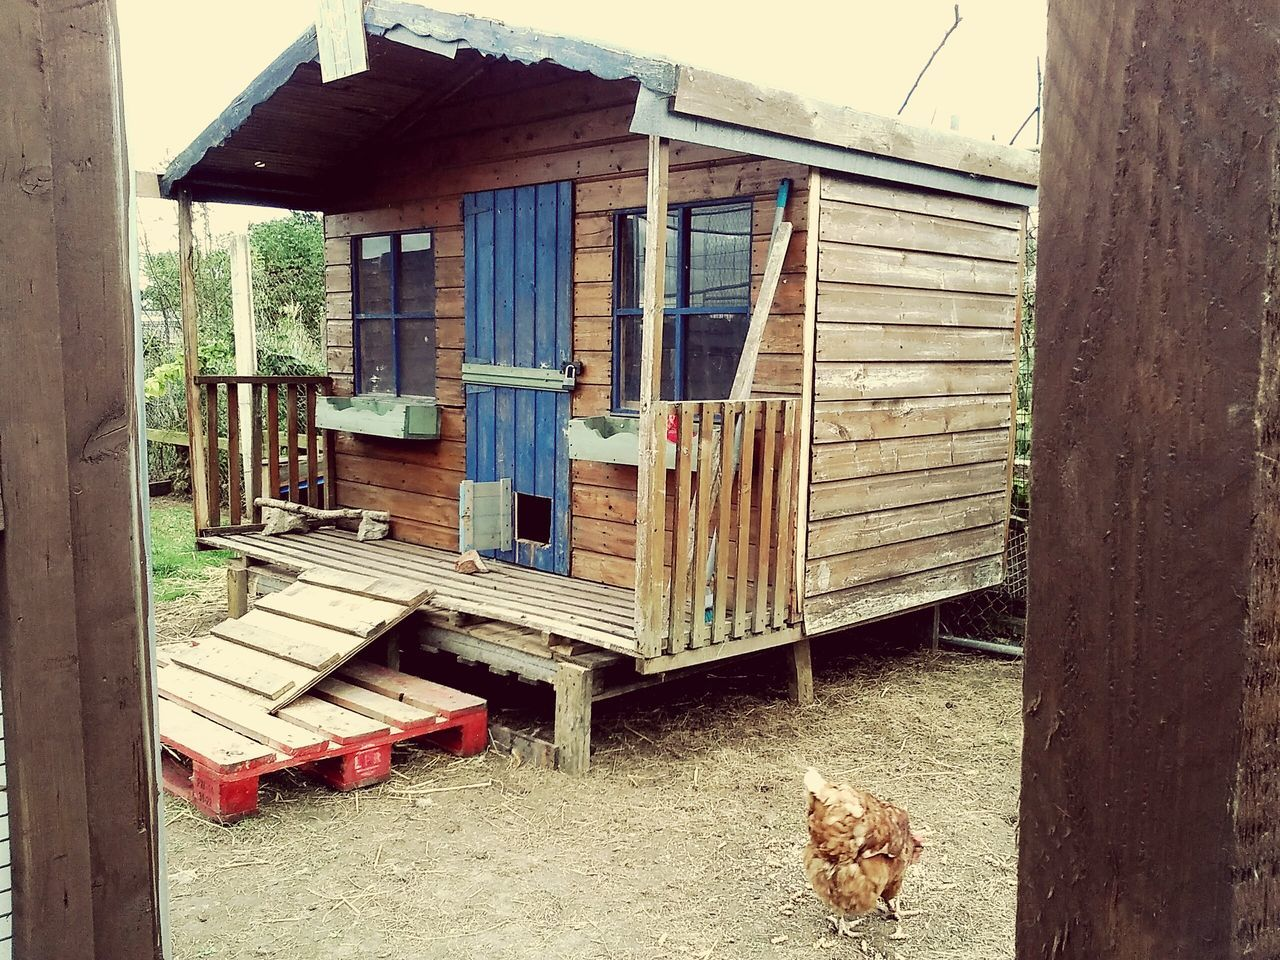 Architecture Built Structure Animal Themes Building Exterior Domestic Animals Entrance Front Door Weathered Outdoors Chicken Coops Messy Door